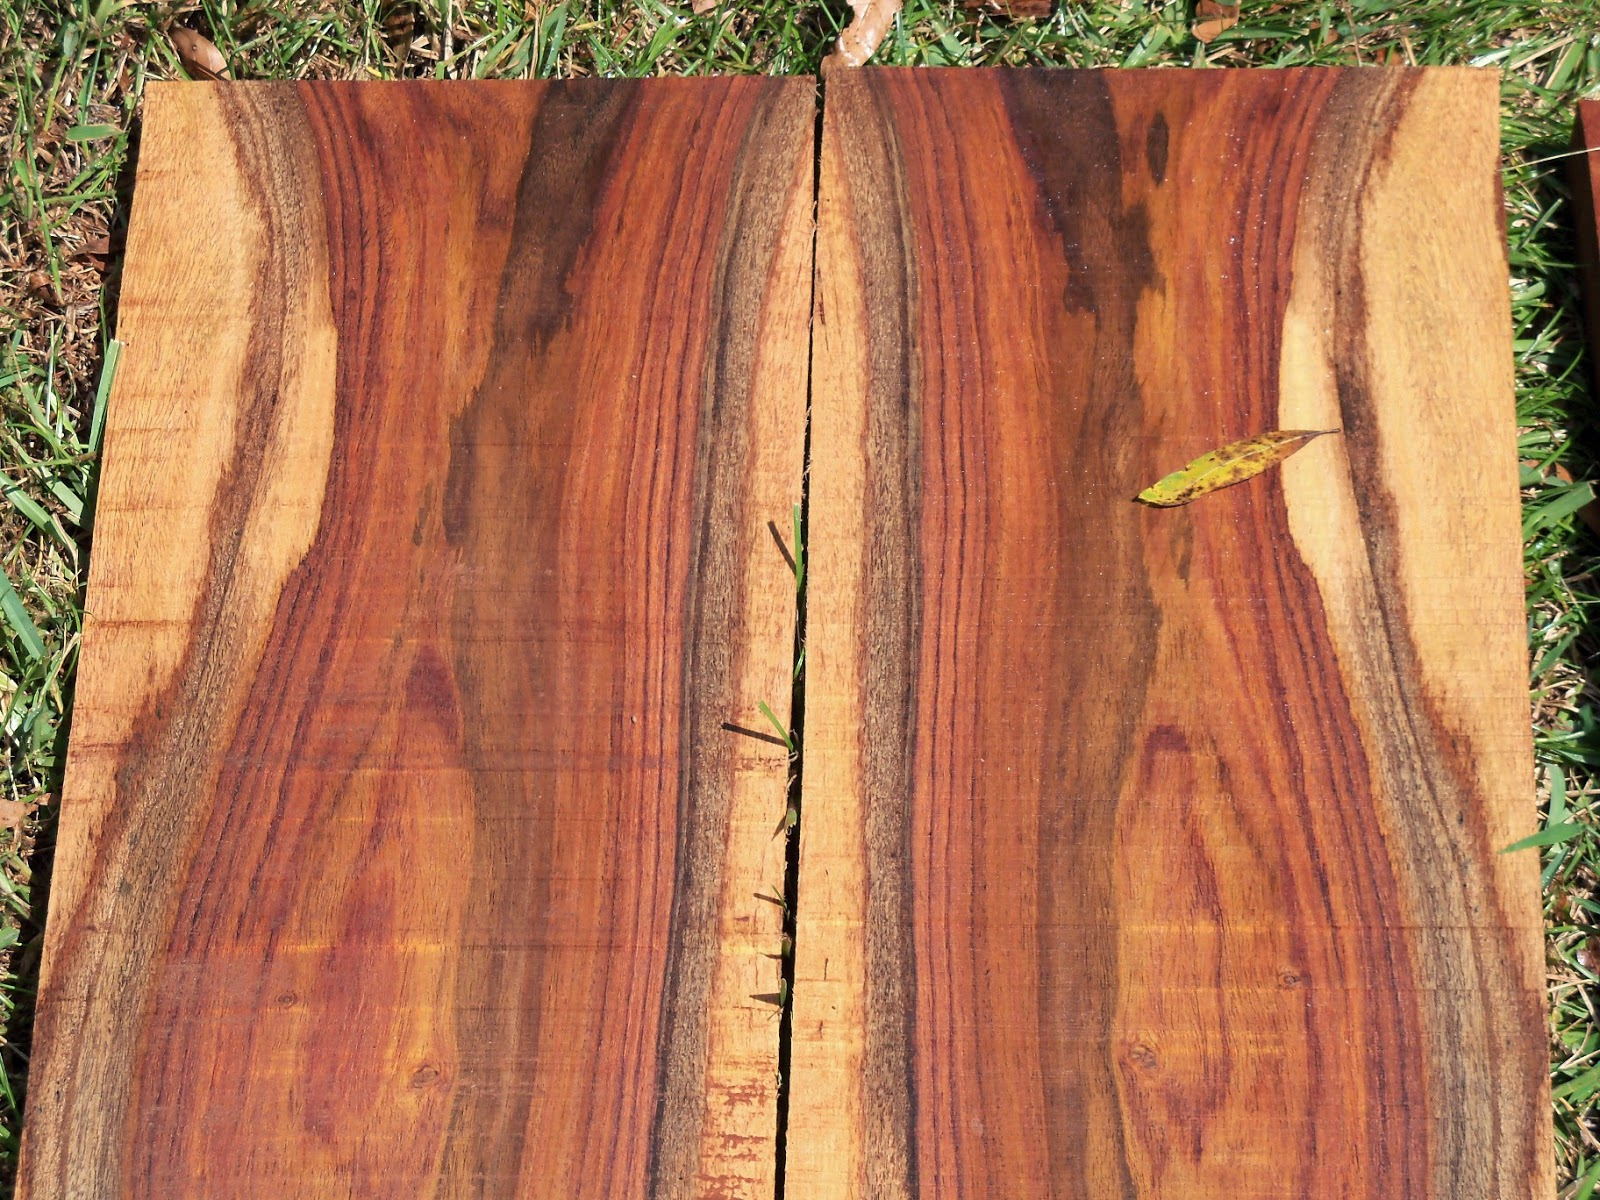 Destruction for fun and profit lost rosewood and the for The rosewood